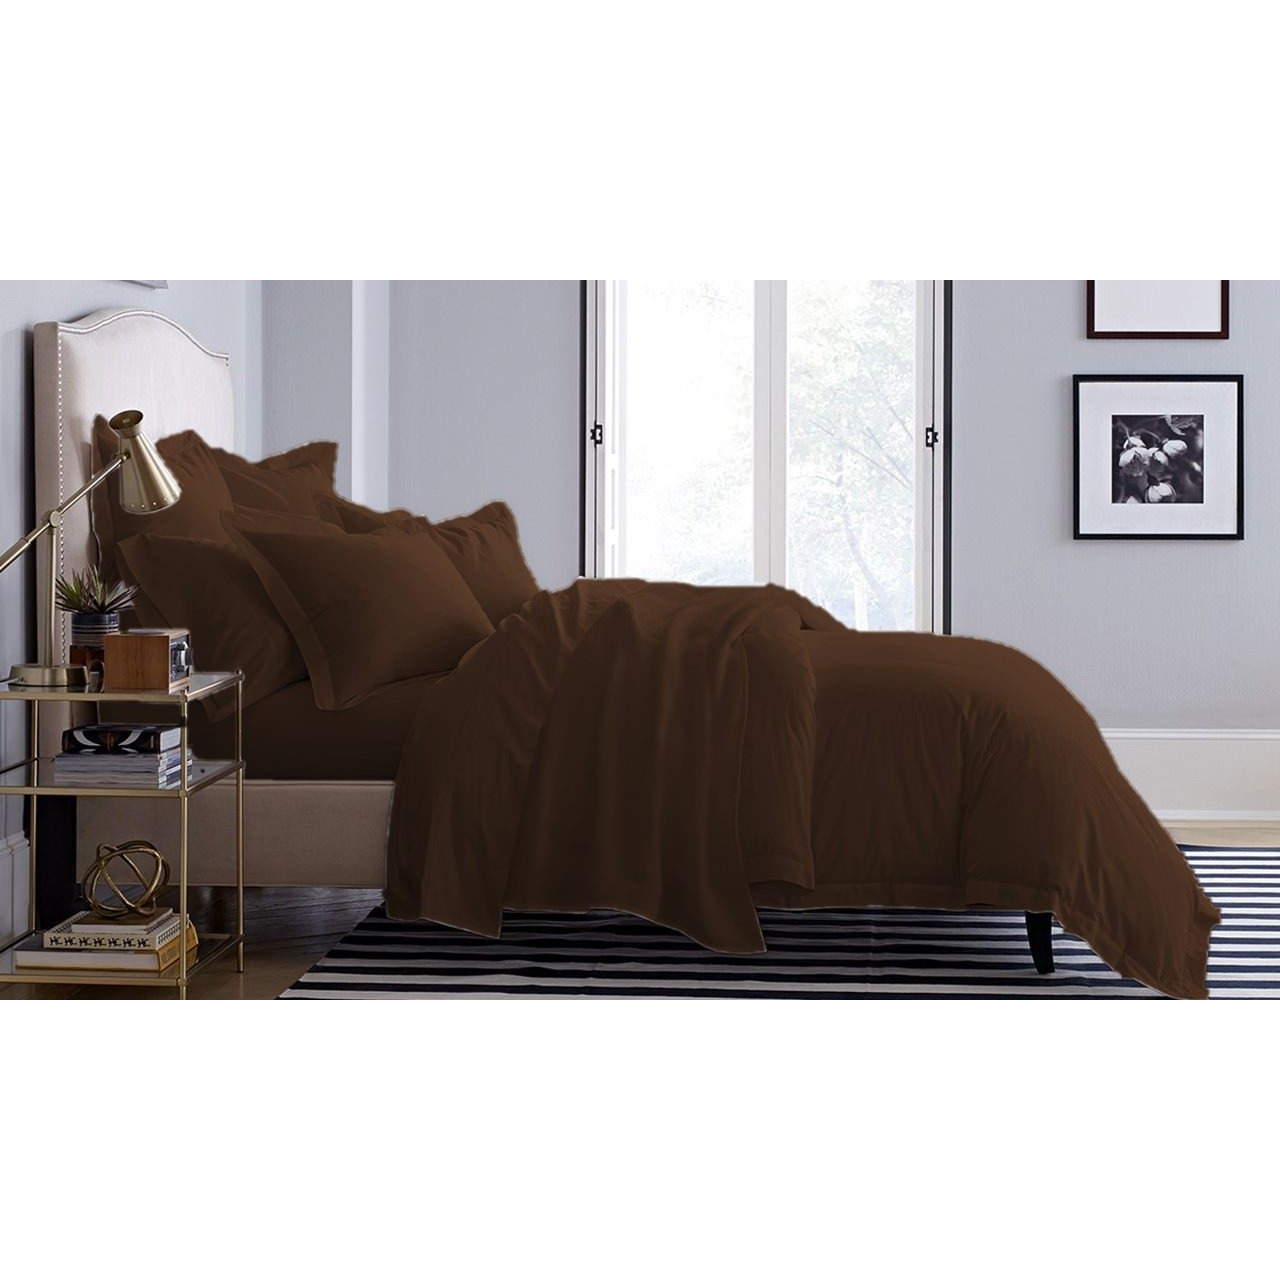 Home Decor Bed Fitted Chocolate Color King Size Bed Sheet With Pillow Cases Bedcover Bed Cases